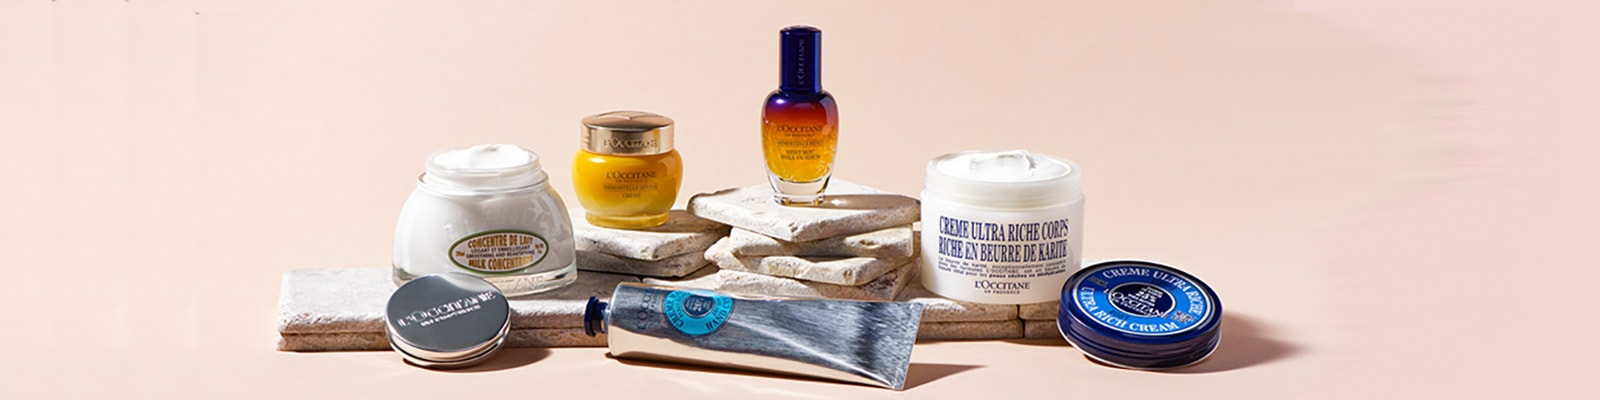 MOST LOVED - l'Occitane